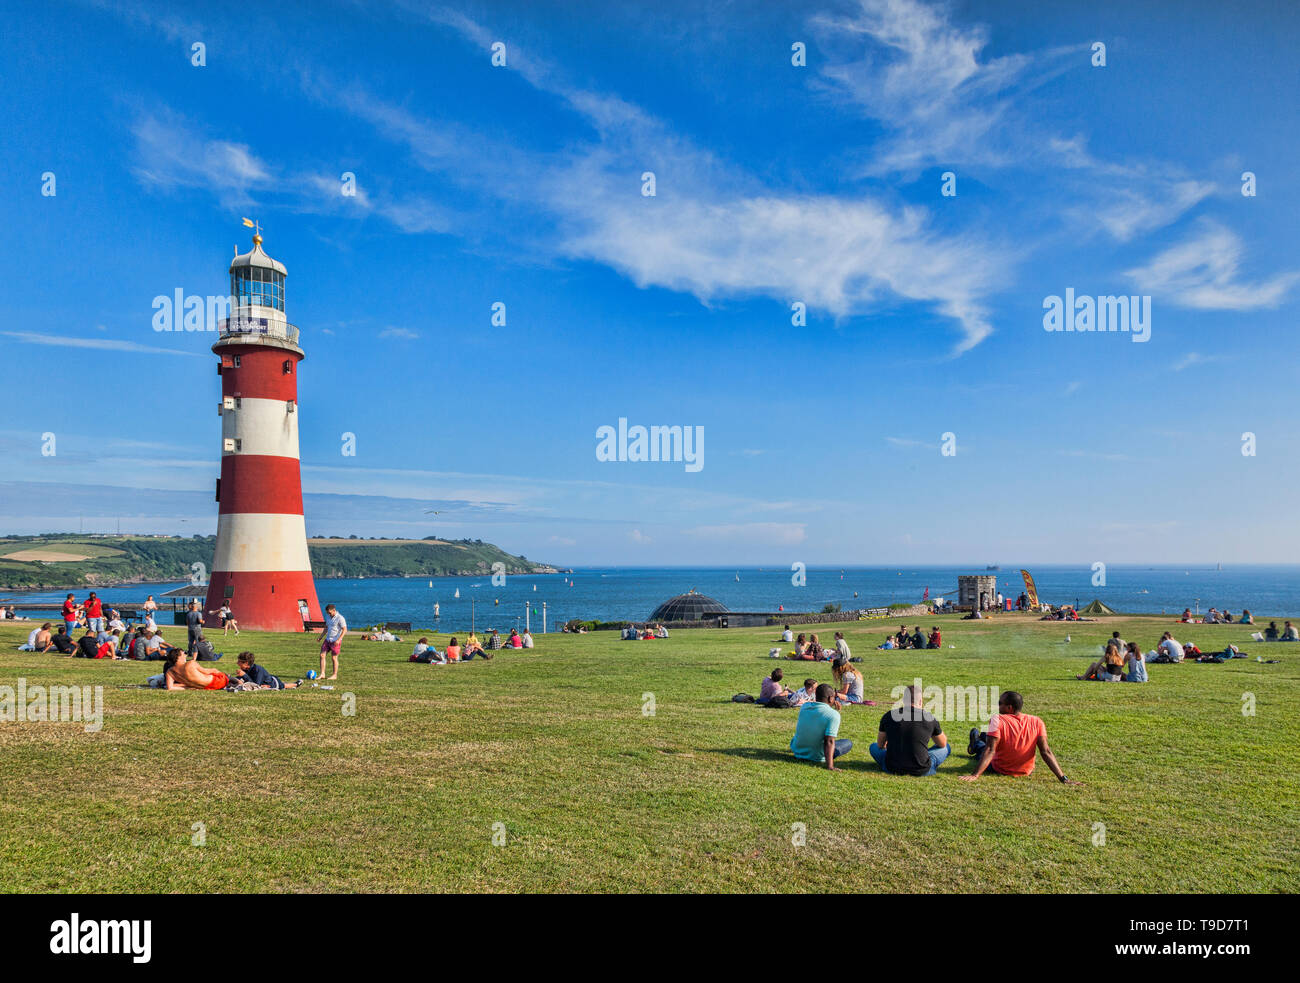 9 June 2018: Plymouth, Devon UK - Plymouth Hoe on a beautiful spring evening, with the third Eddystone Lighthouse, now known as Smeaton's Tower, reloc Stock Photo